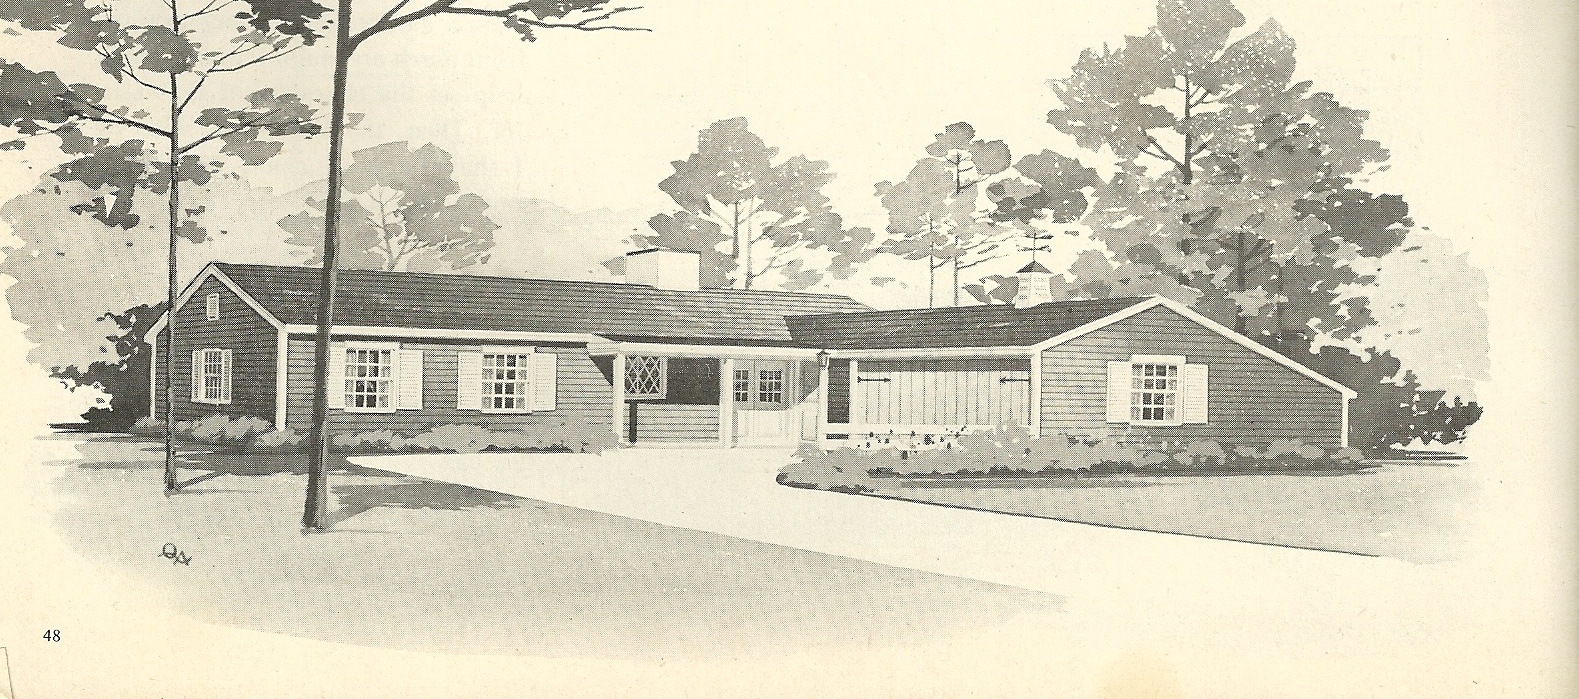 Vintage house plans 2122 antique alter ego 1960s ranch style house plans